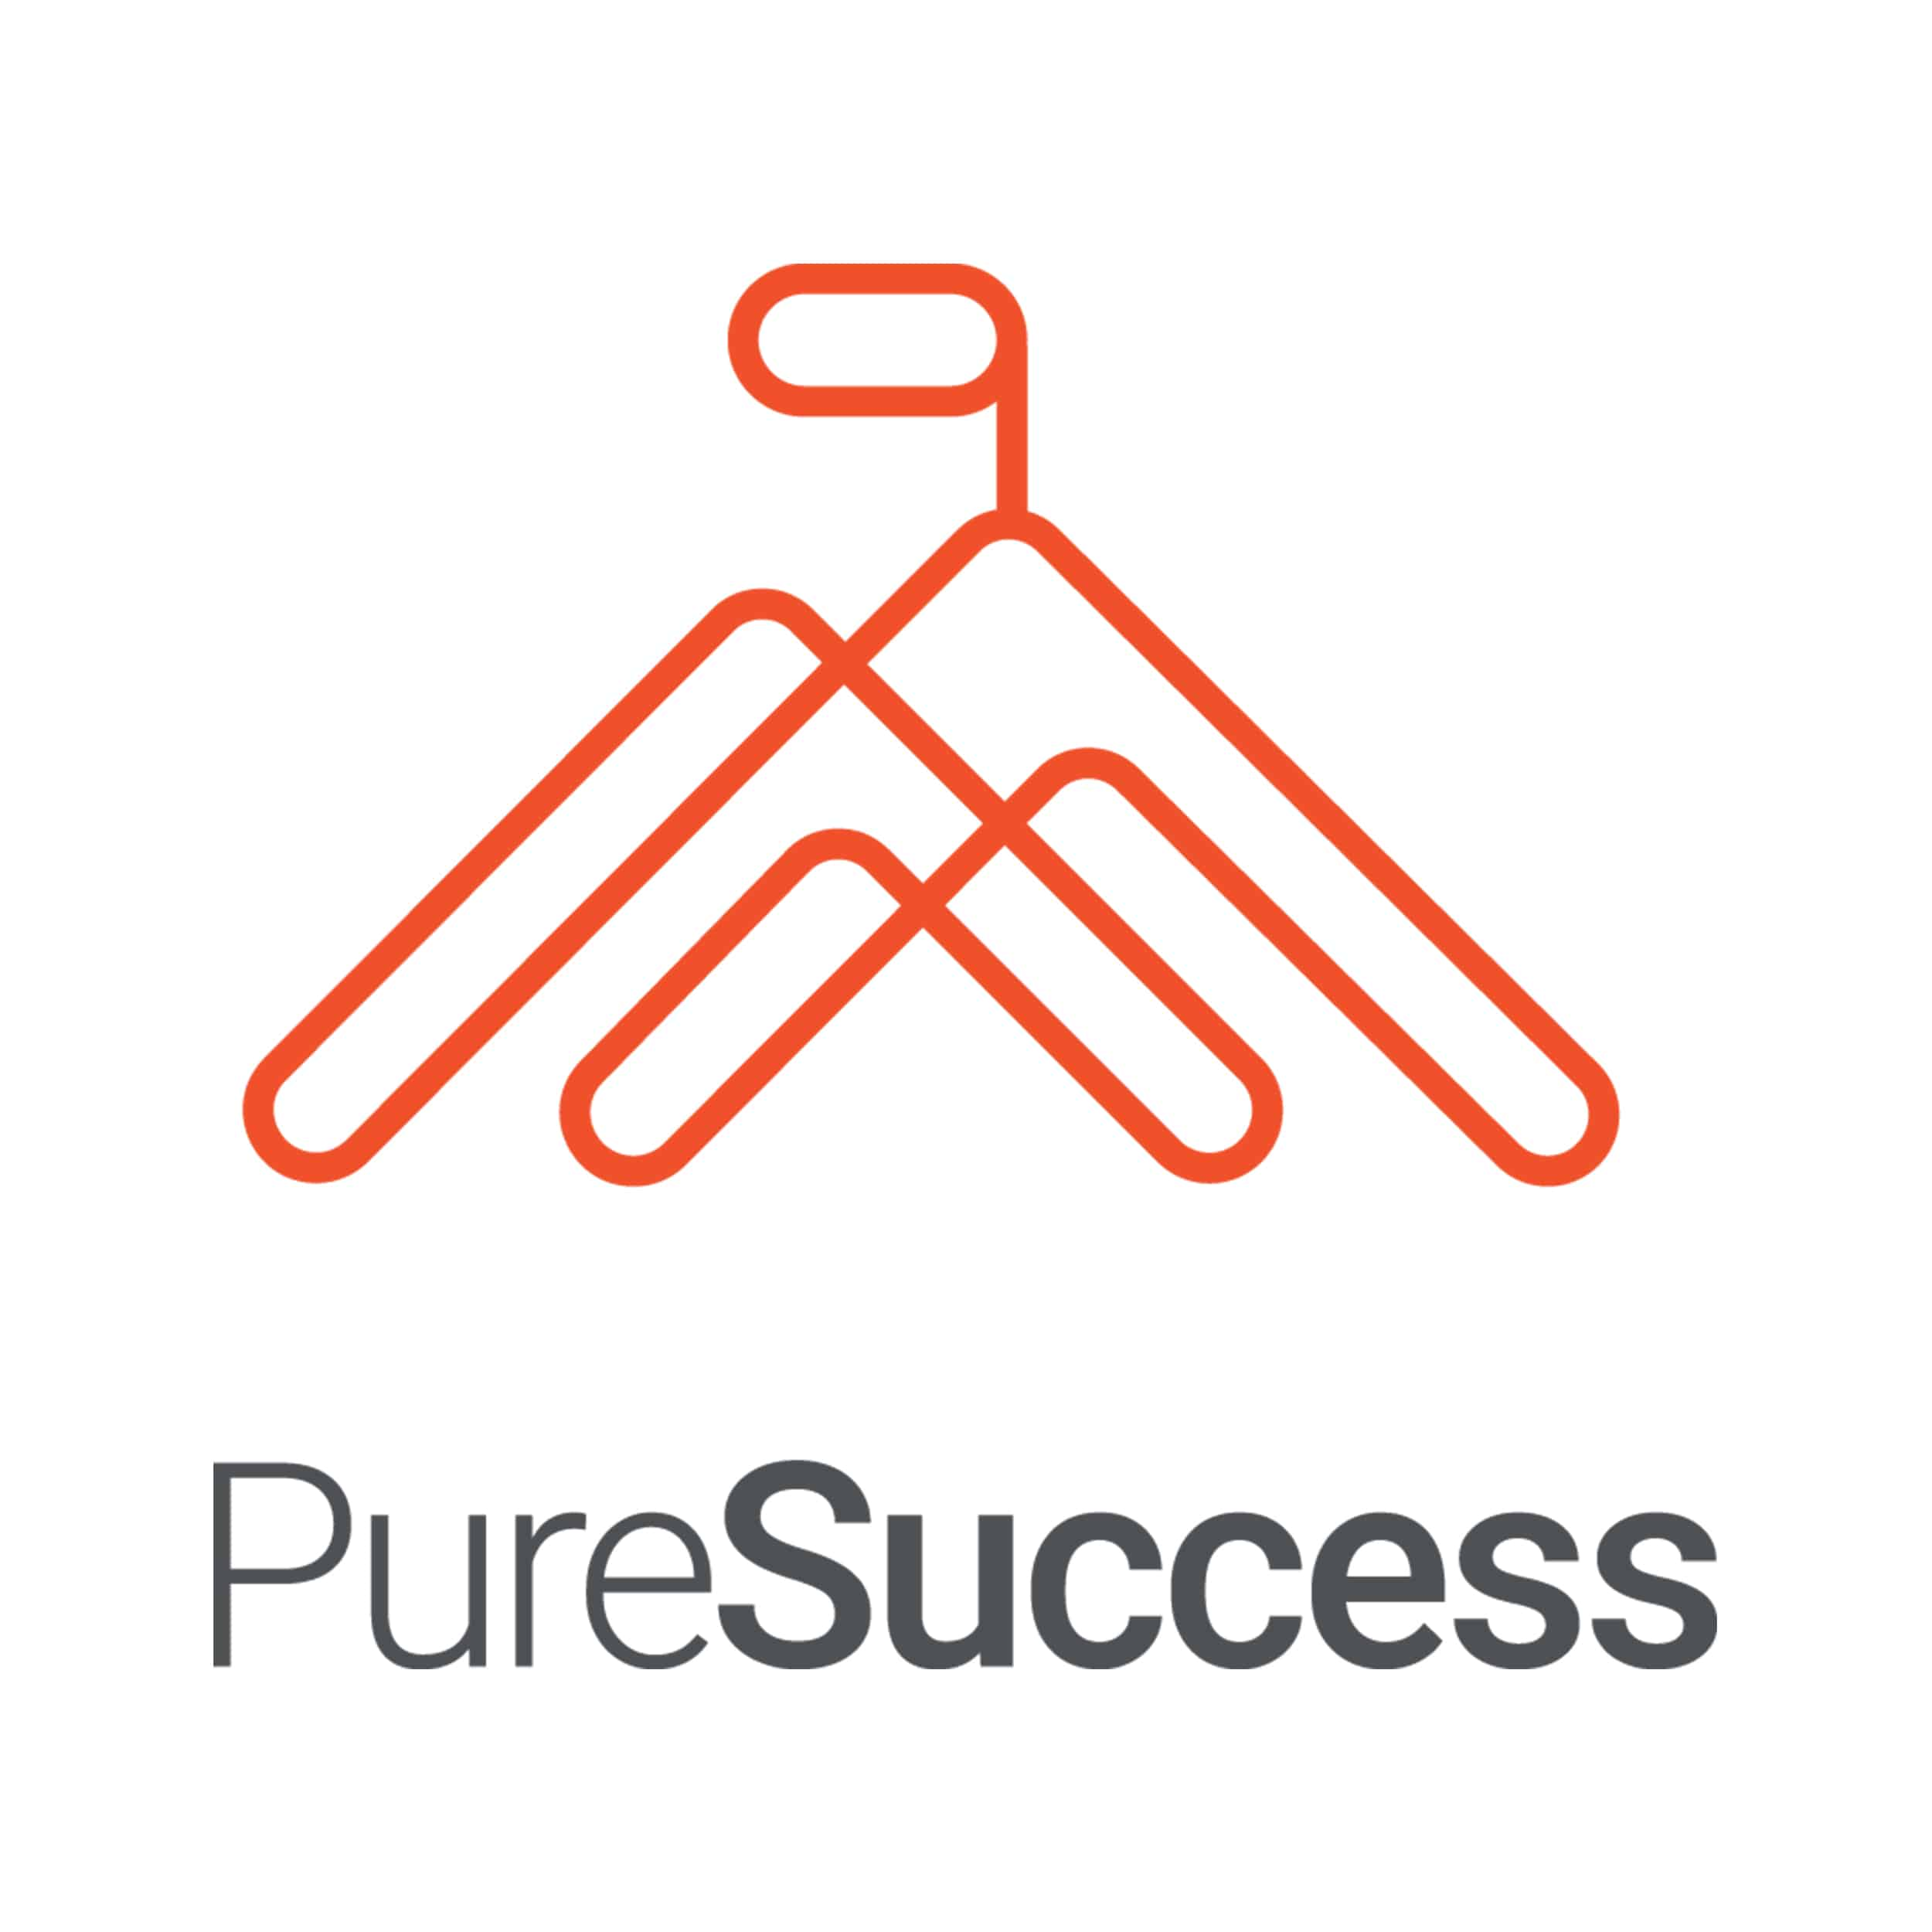 PureSuccess